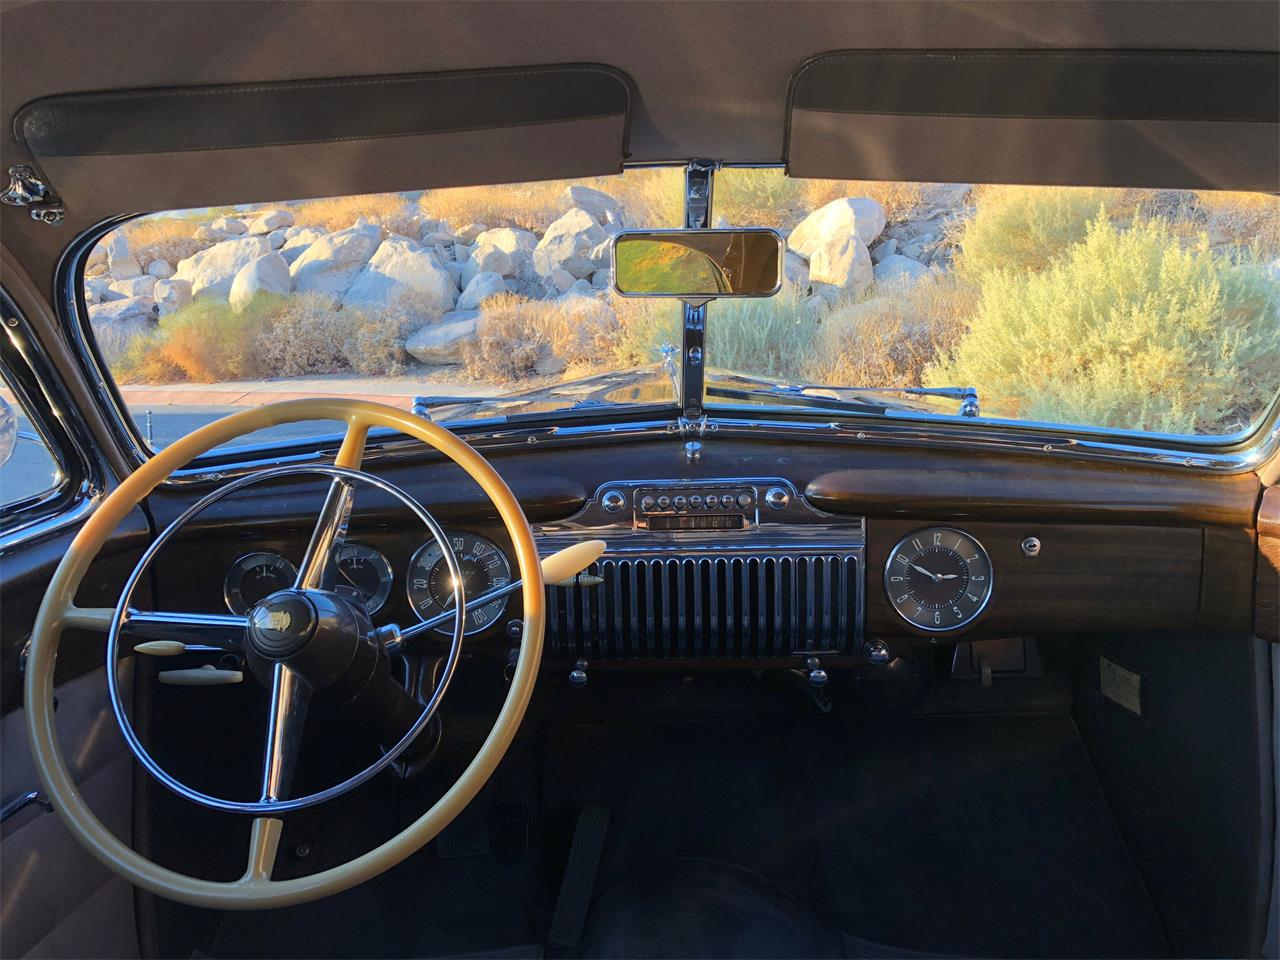 Large Picture of Classic '46 Cadillac Fleetwood 60 Special - $42,500.00 - QMKK